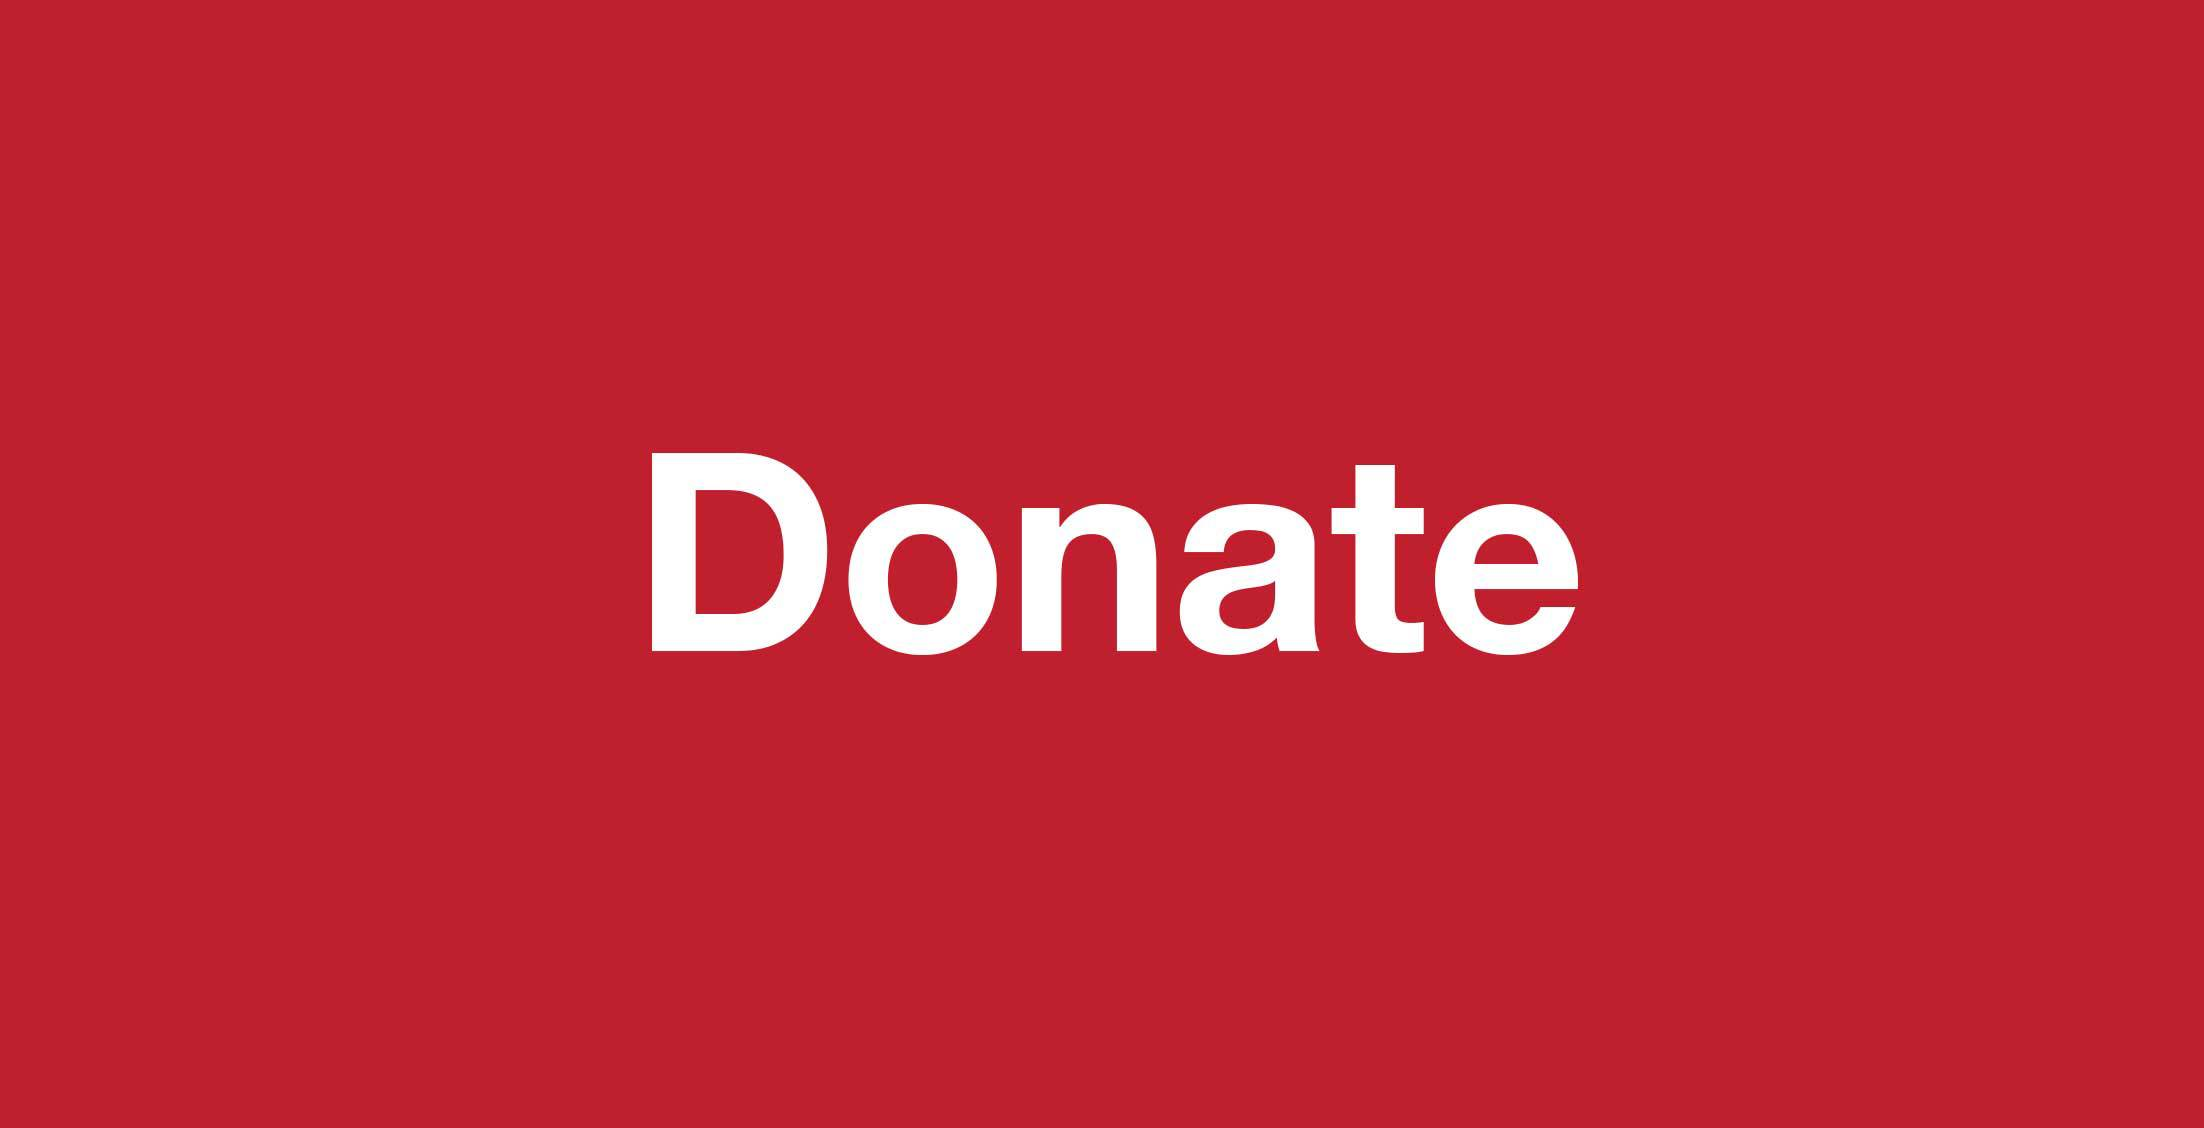 """Click the Donate button and get redirected to Goodwill of Southwestern Pennsylvania's site. Remember to put """"Northside Food Pantry"""" in the Comments field to make sure your donation goes to the pantry!"""